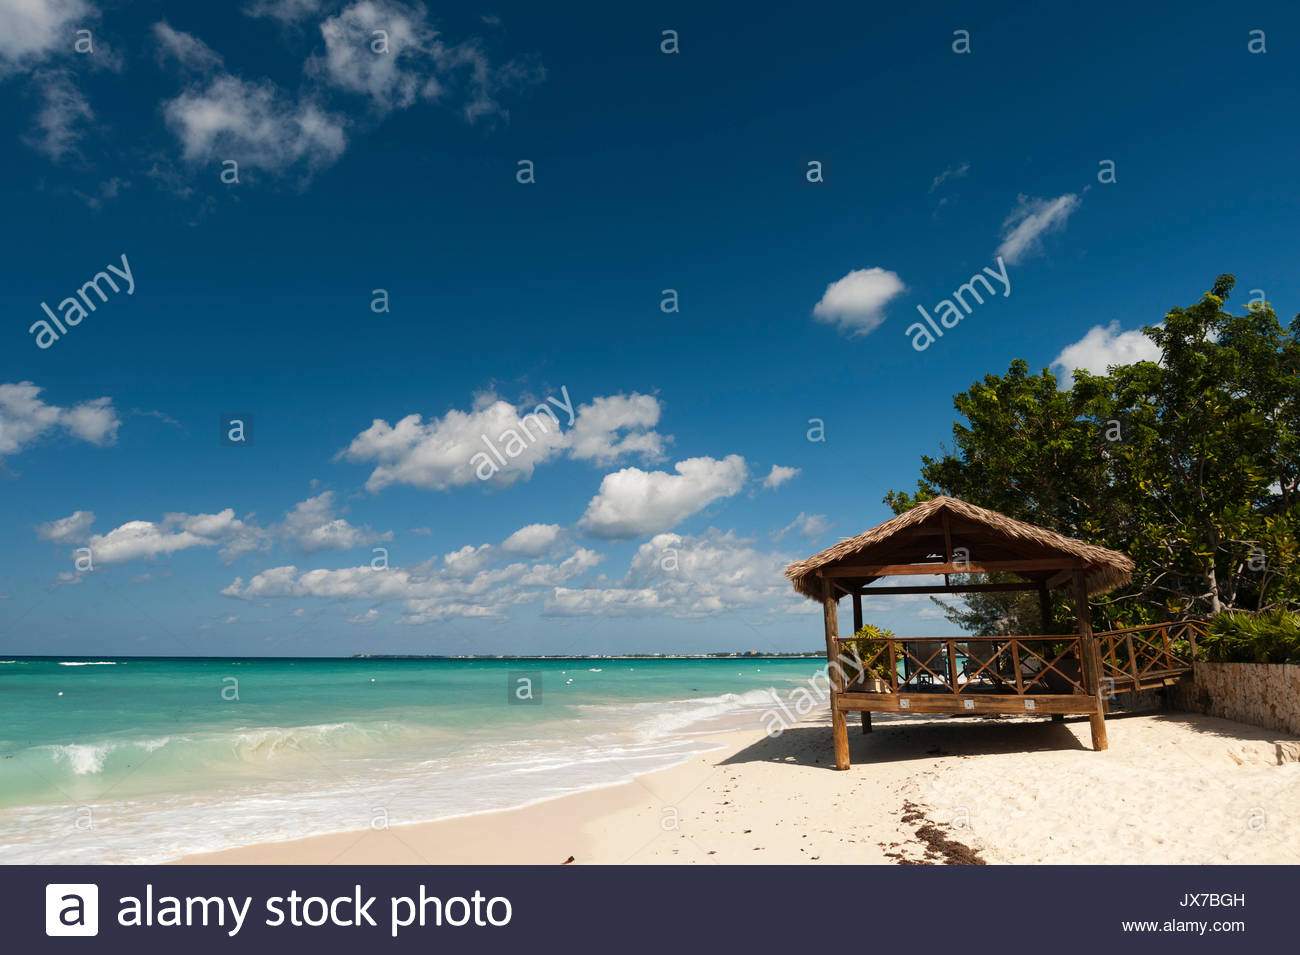 A view of Seven Mile beach. - Stock Image